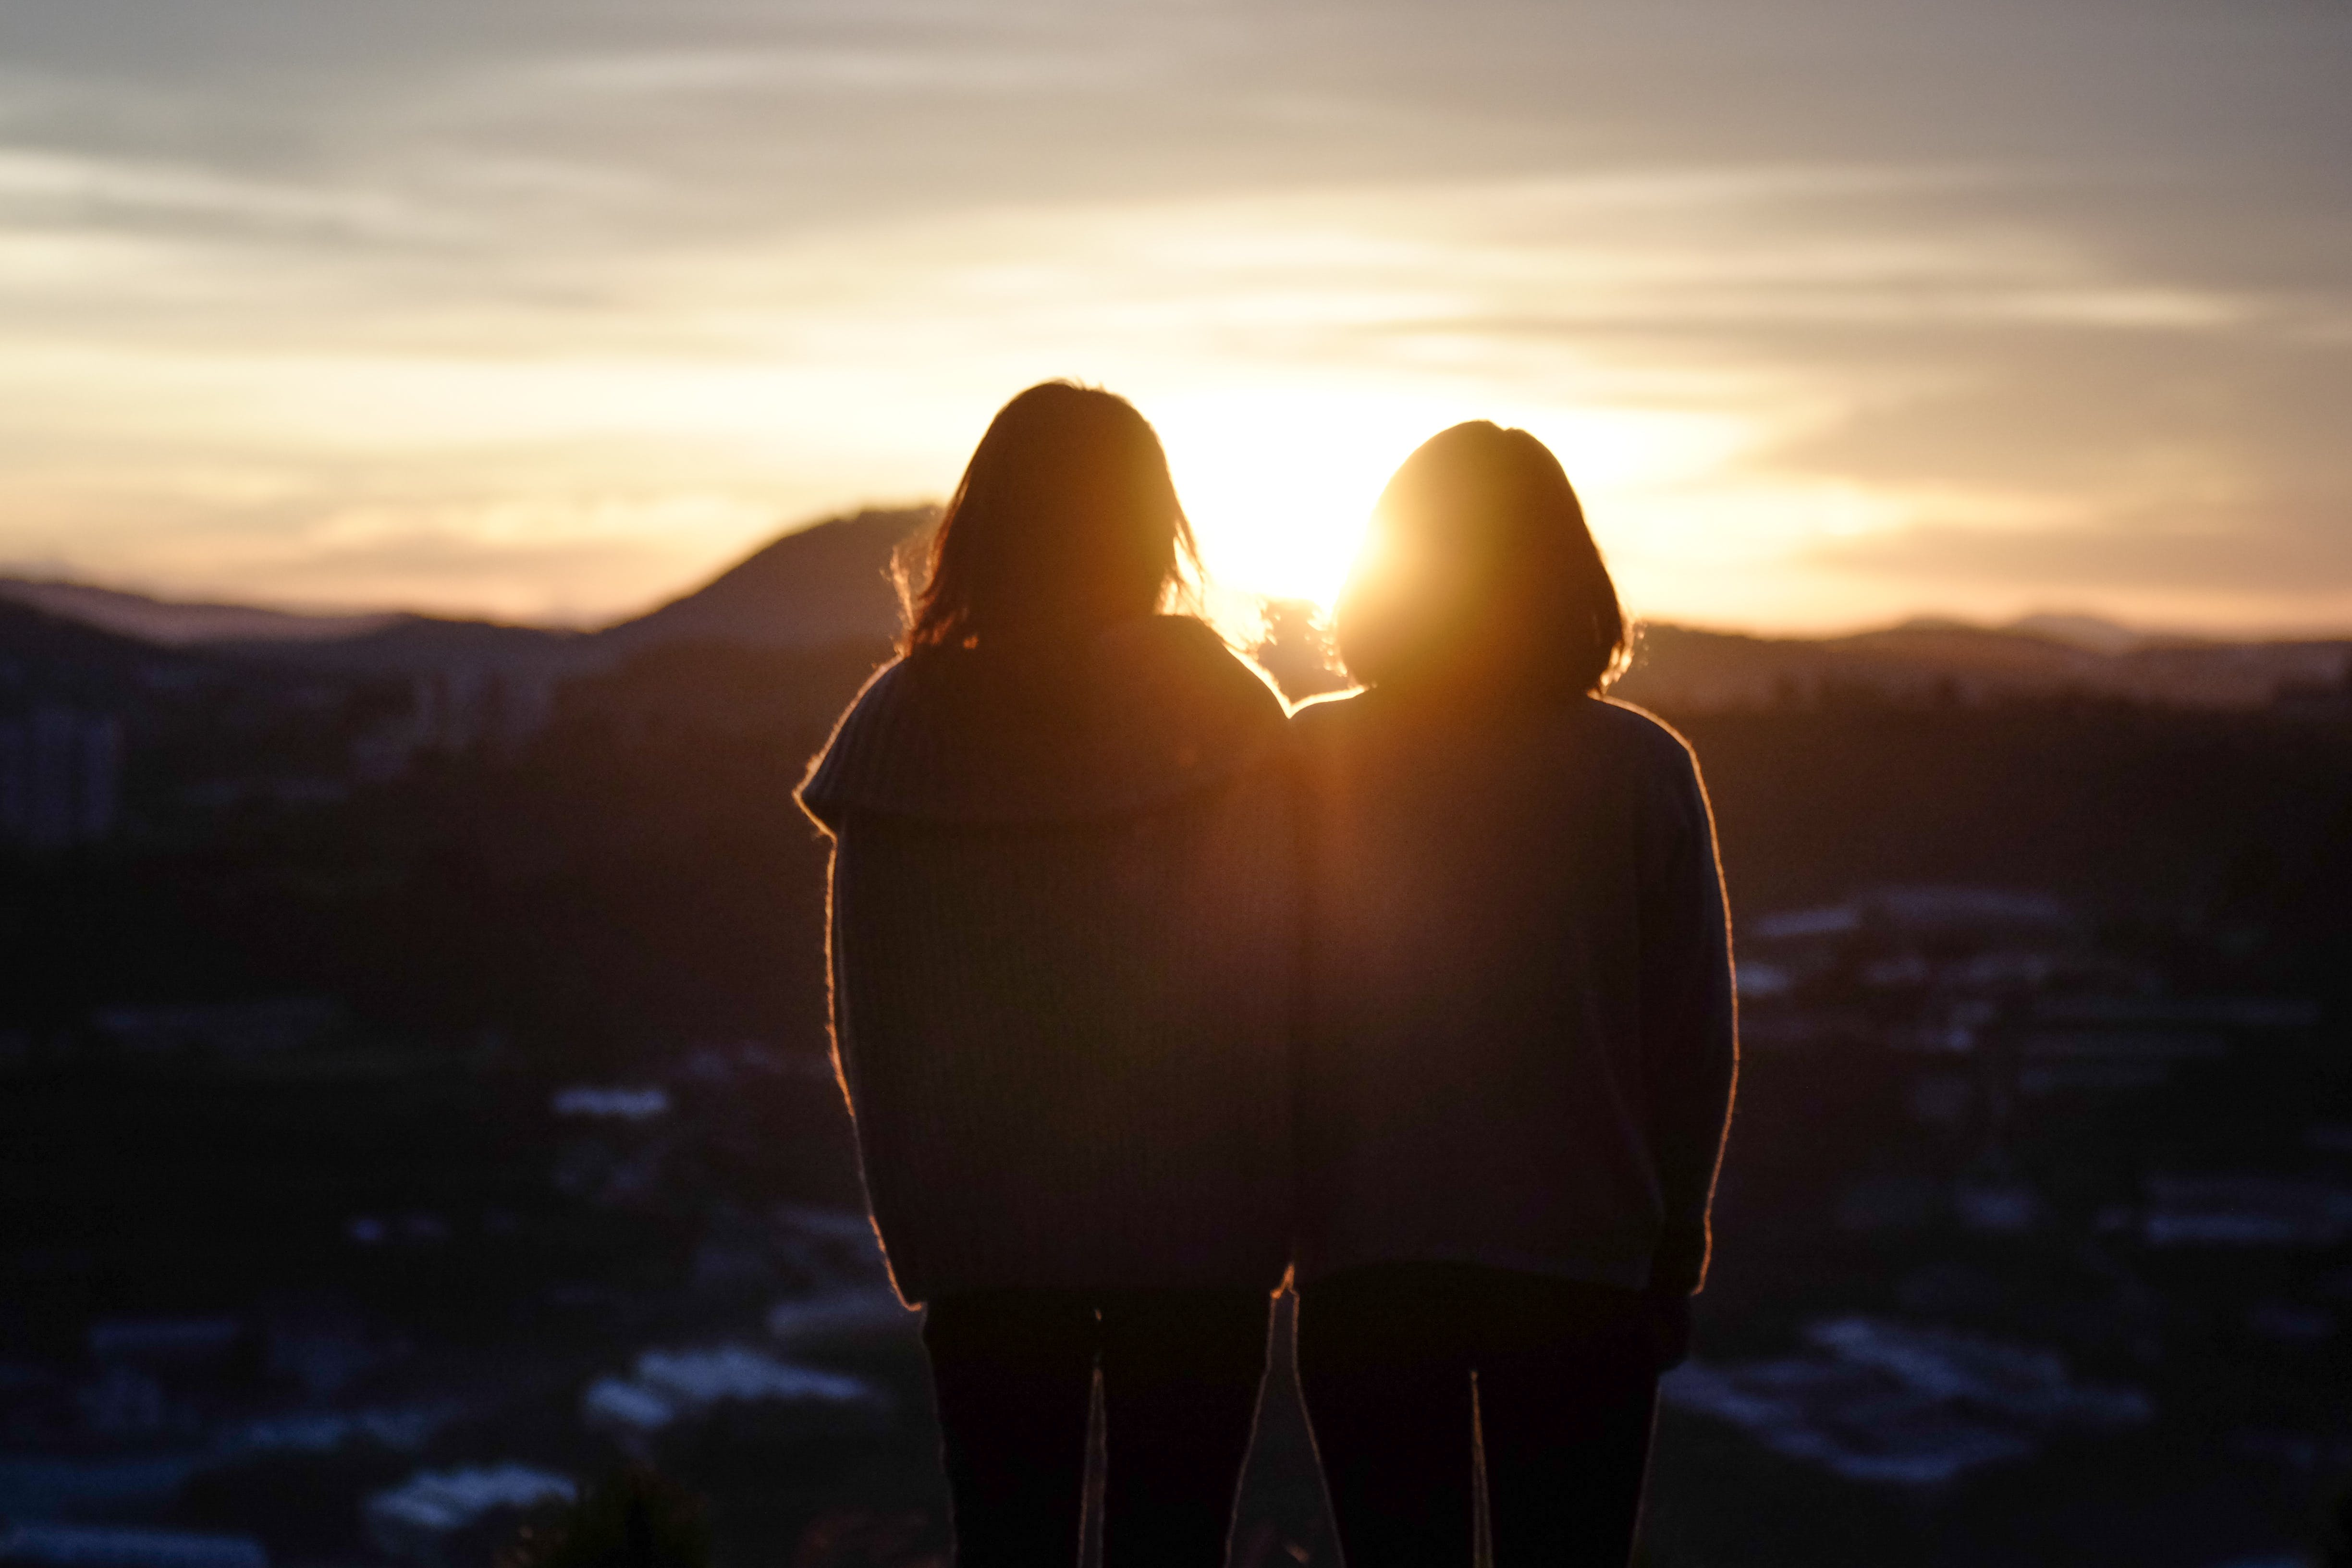 Silhouette of Two Woman Standing